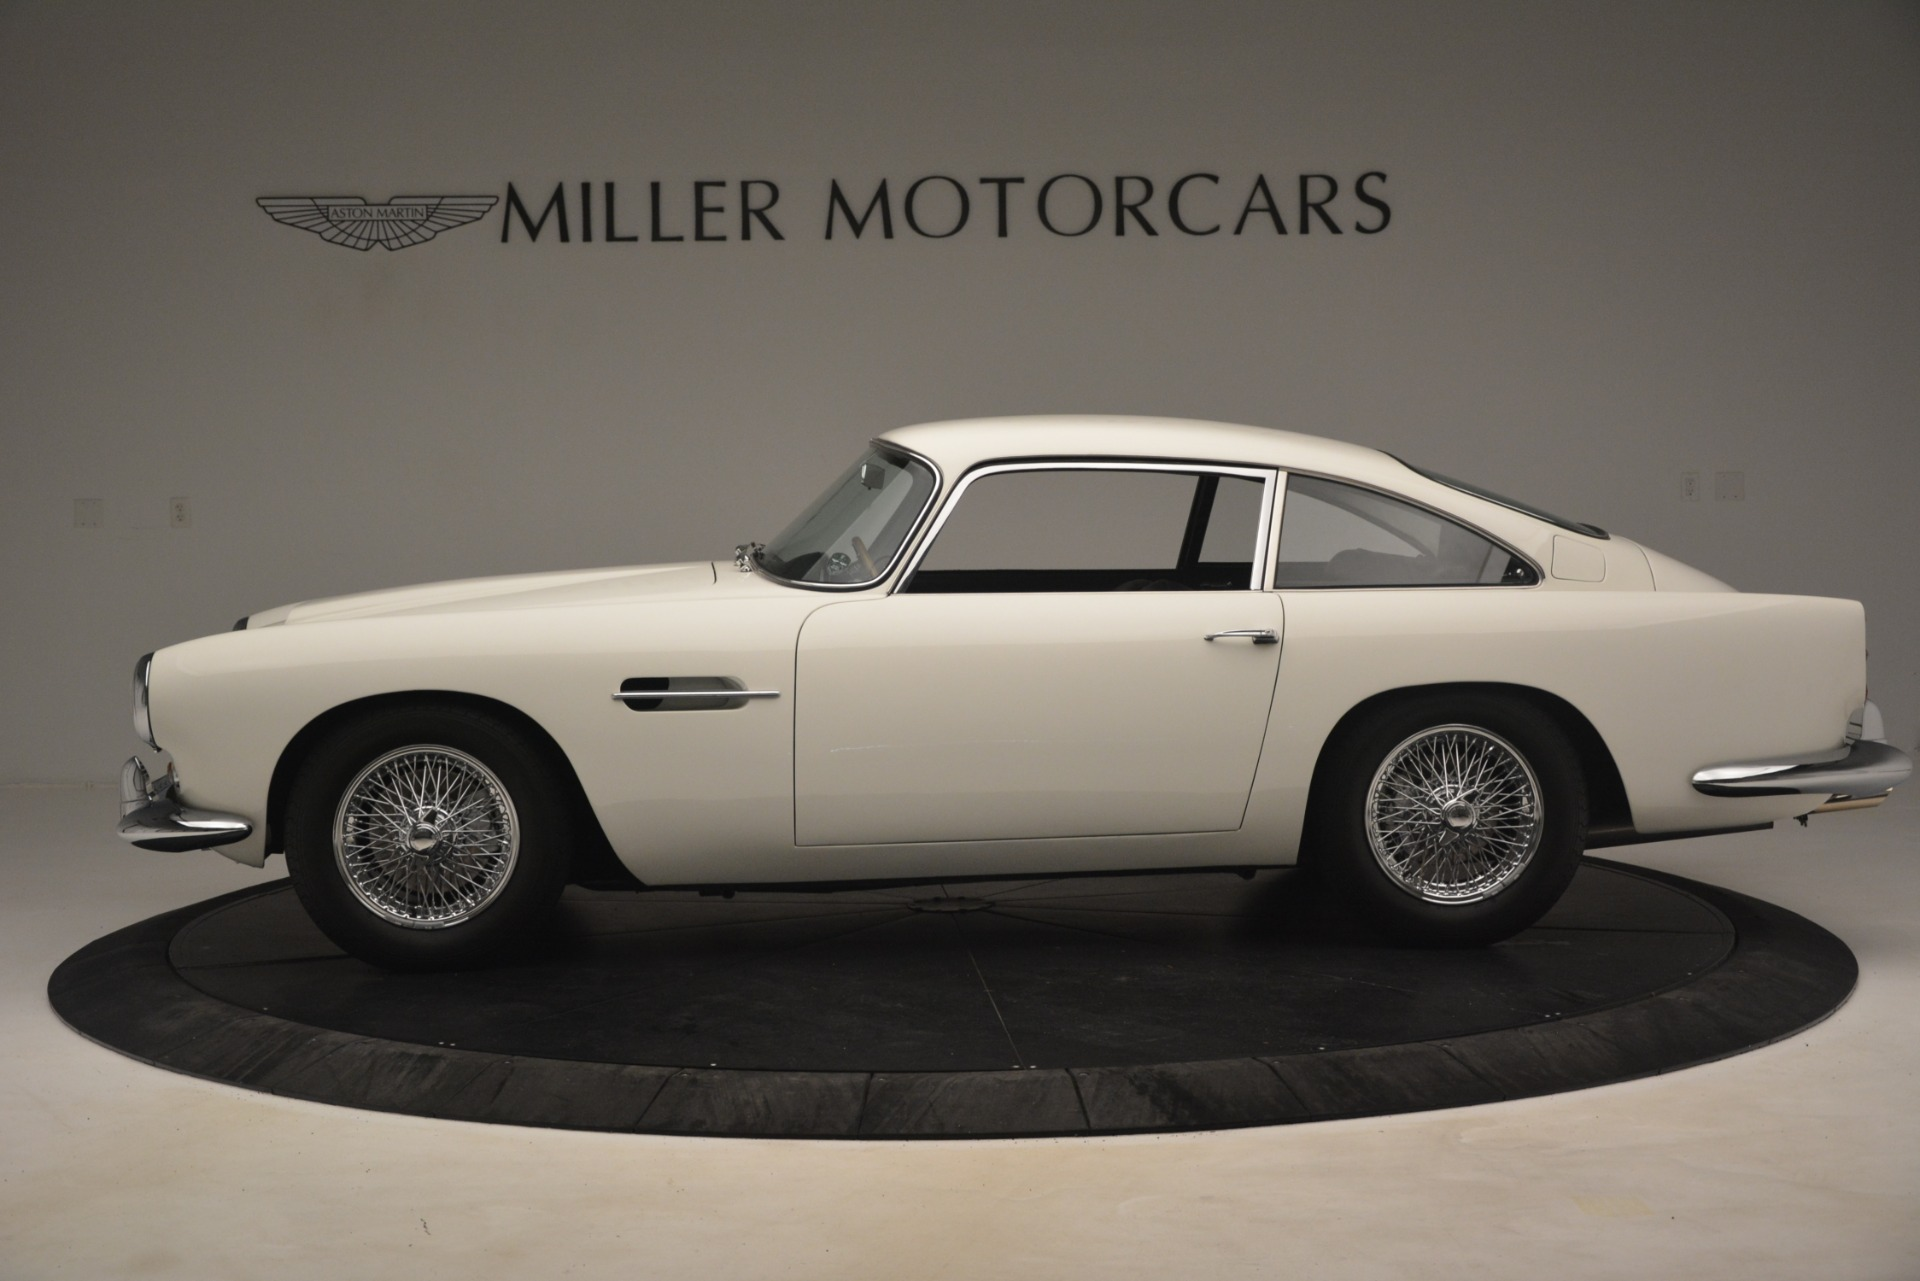 Pre Owned 1961 Aston Martin Db4 Series Iv Coupe For Sale 625 900 Mclaren Greenwich Stock 7567c